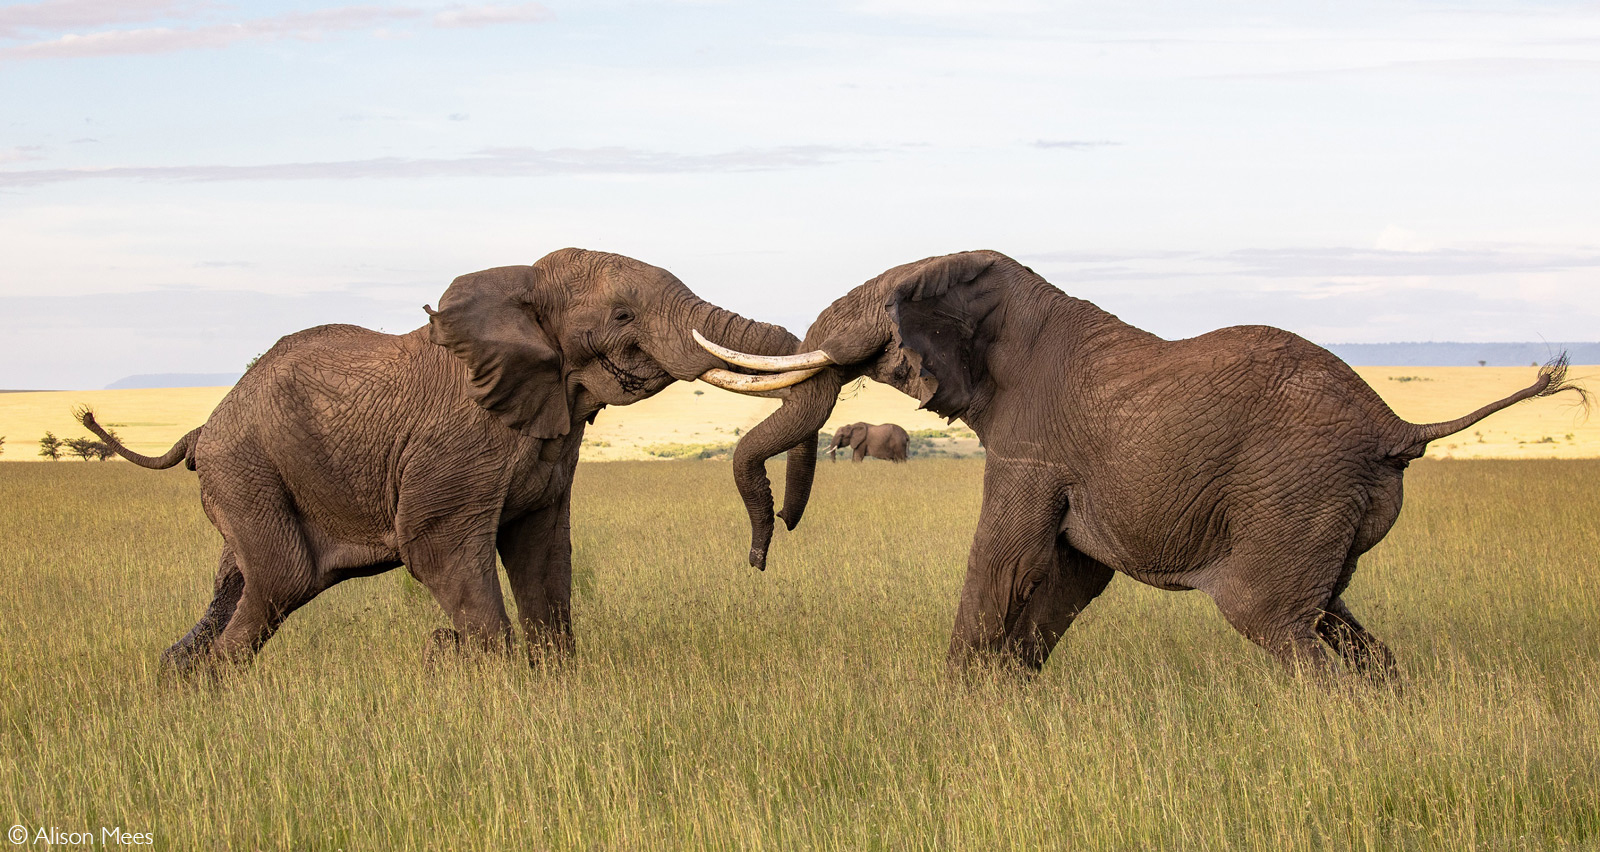 Bull elephants in musth fight for dominance. This tussle lasted for over an hour. Mara North Conservancy, Kenya © Alison Mees